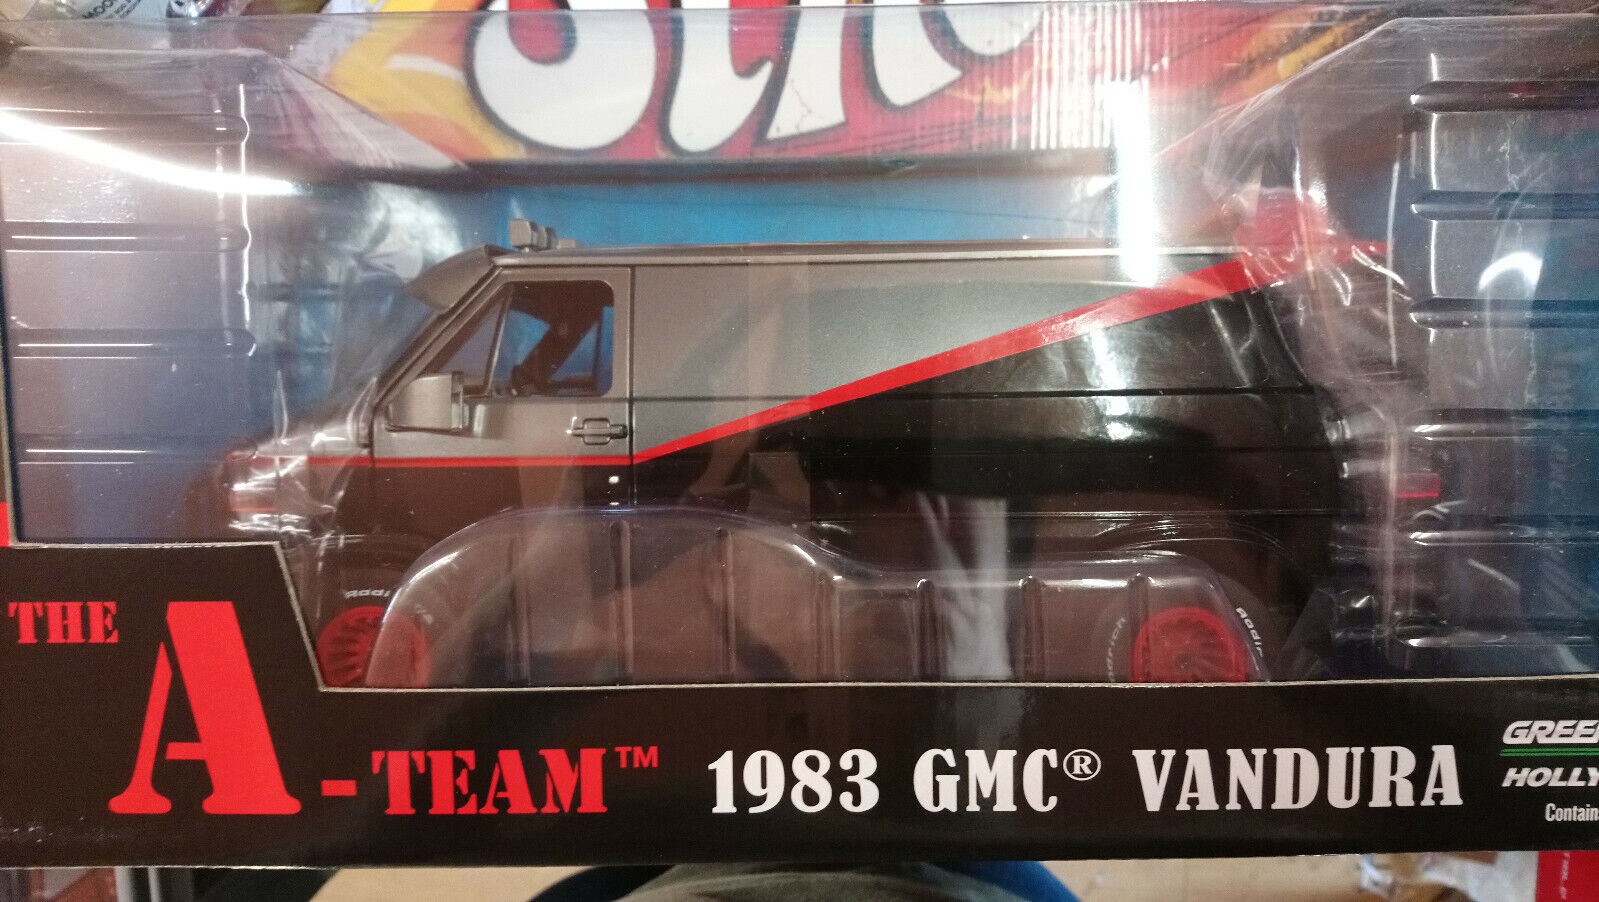 vertlumière hollybois the a team 1983  gmc vandura 1 18 limited edition  les promotions